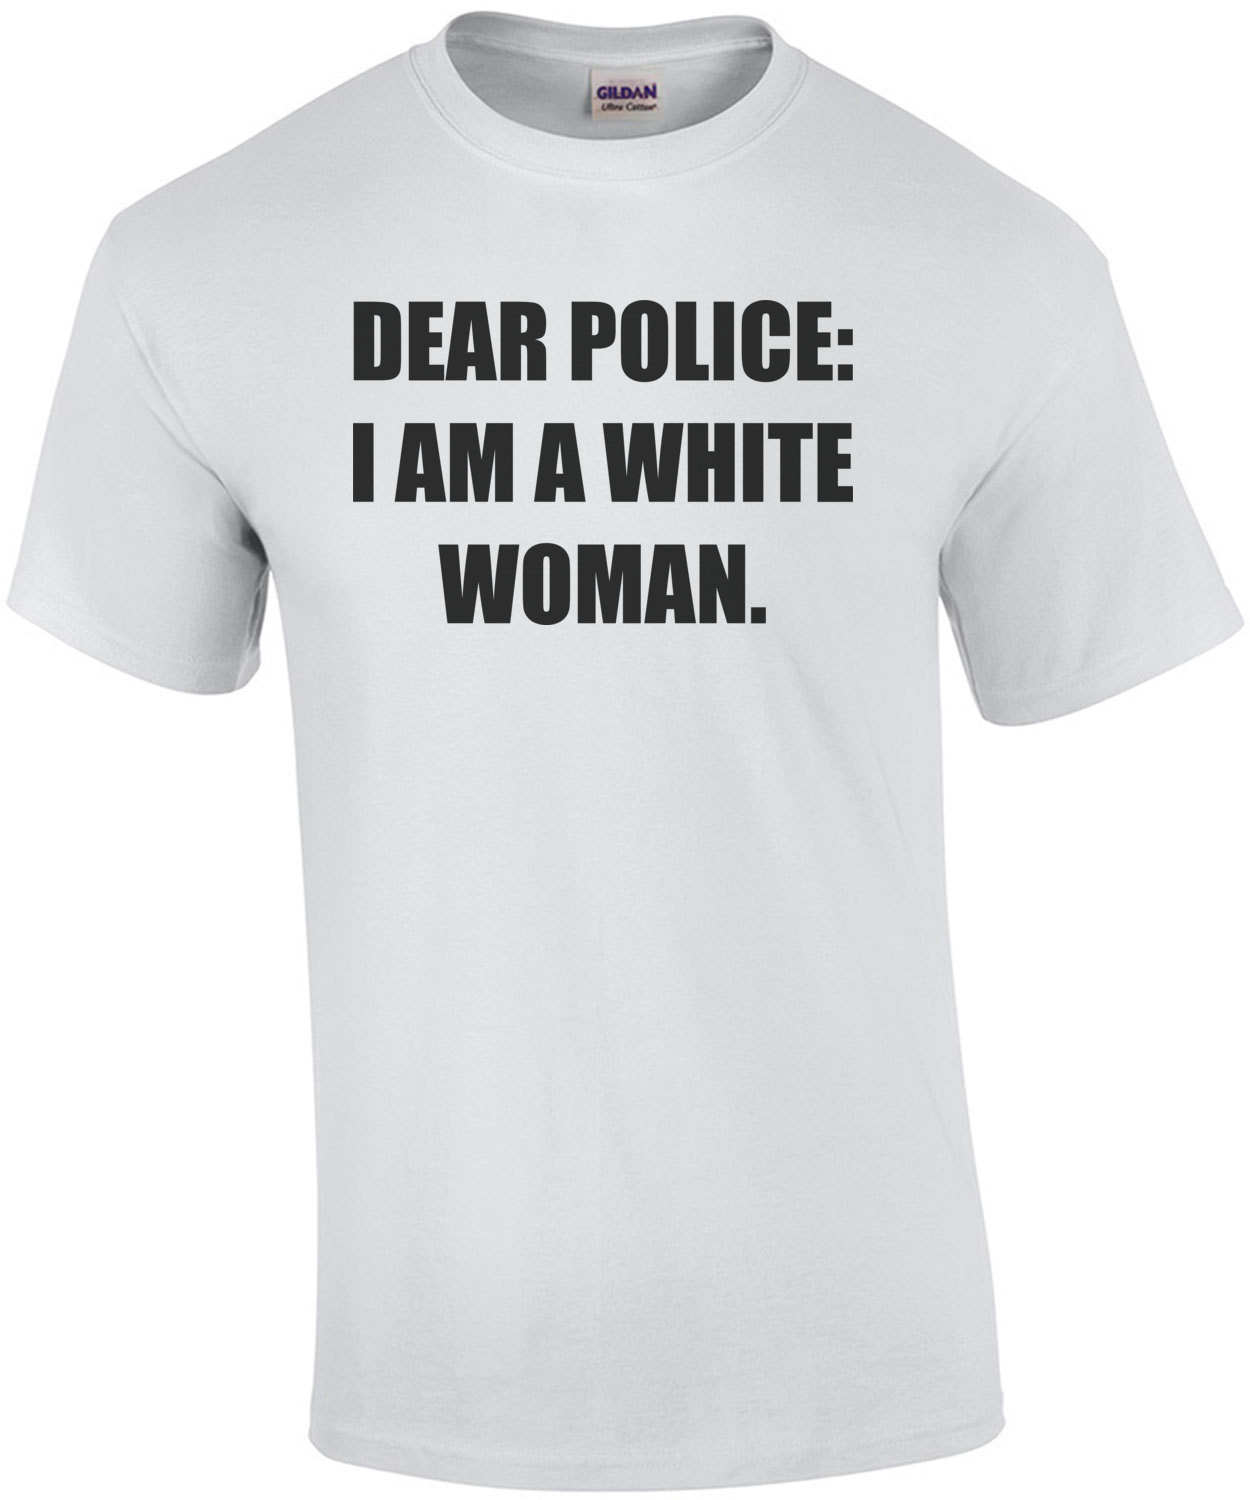 DEAR POLICE: I AM A WHITE WOMAN. Funny T-Shirt